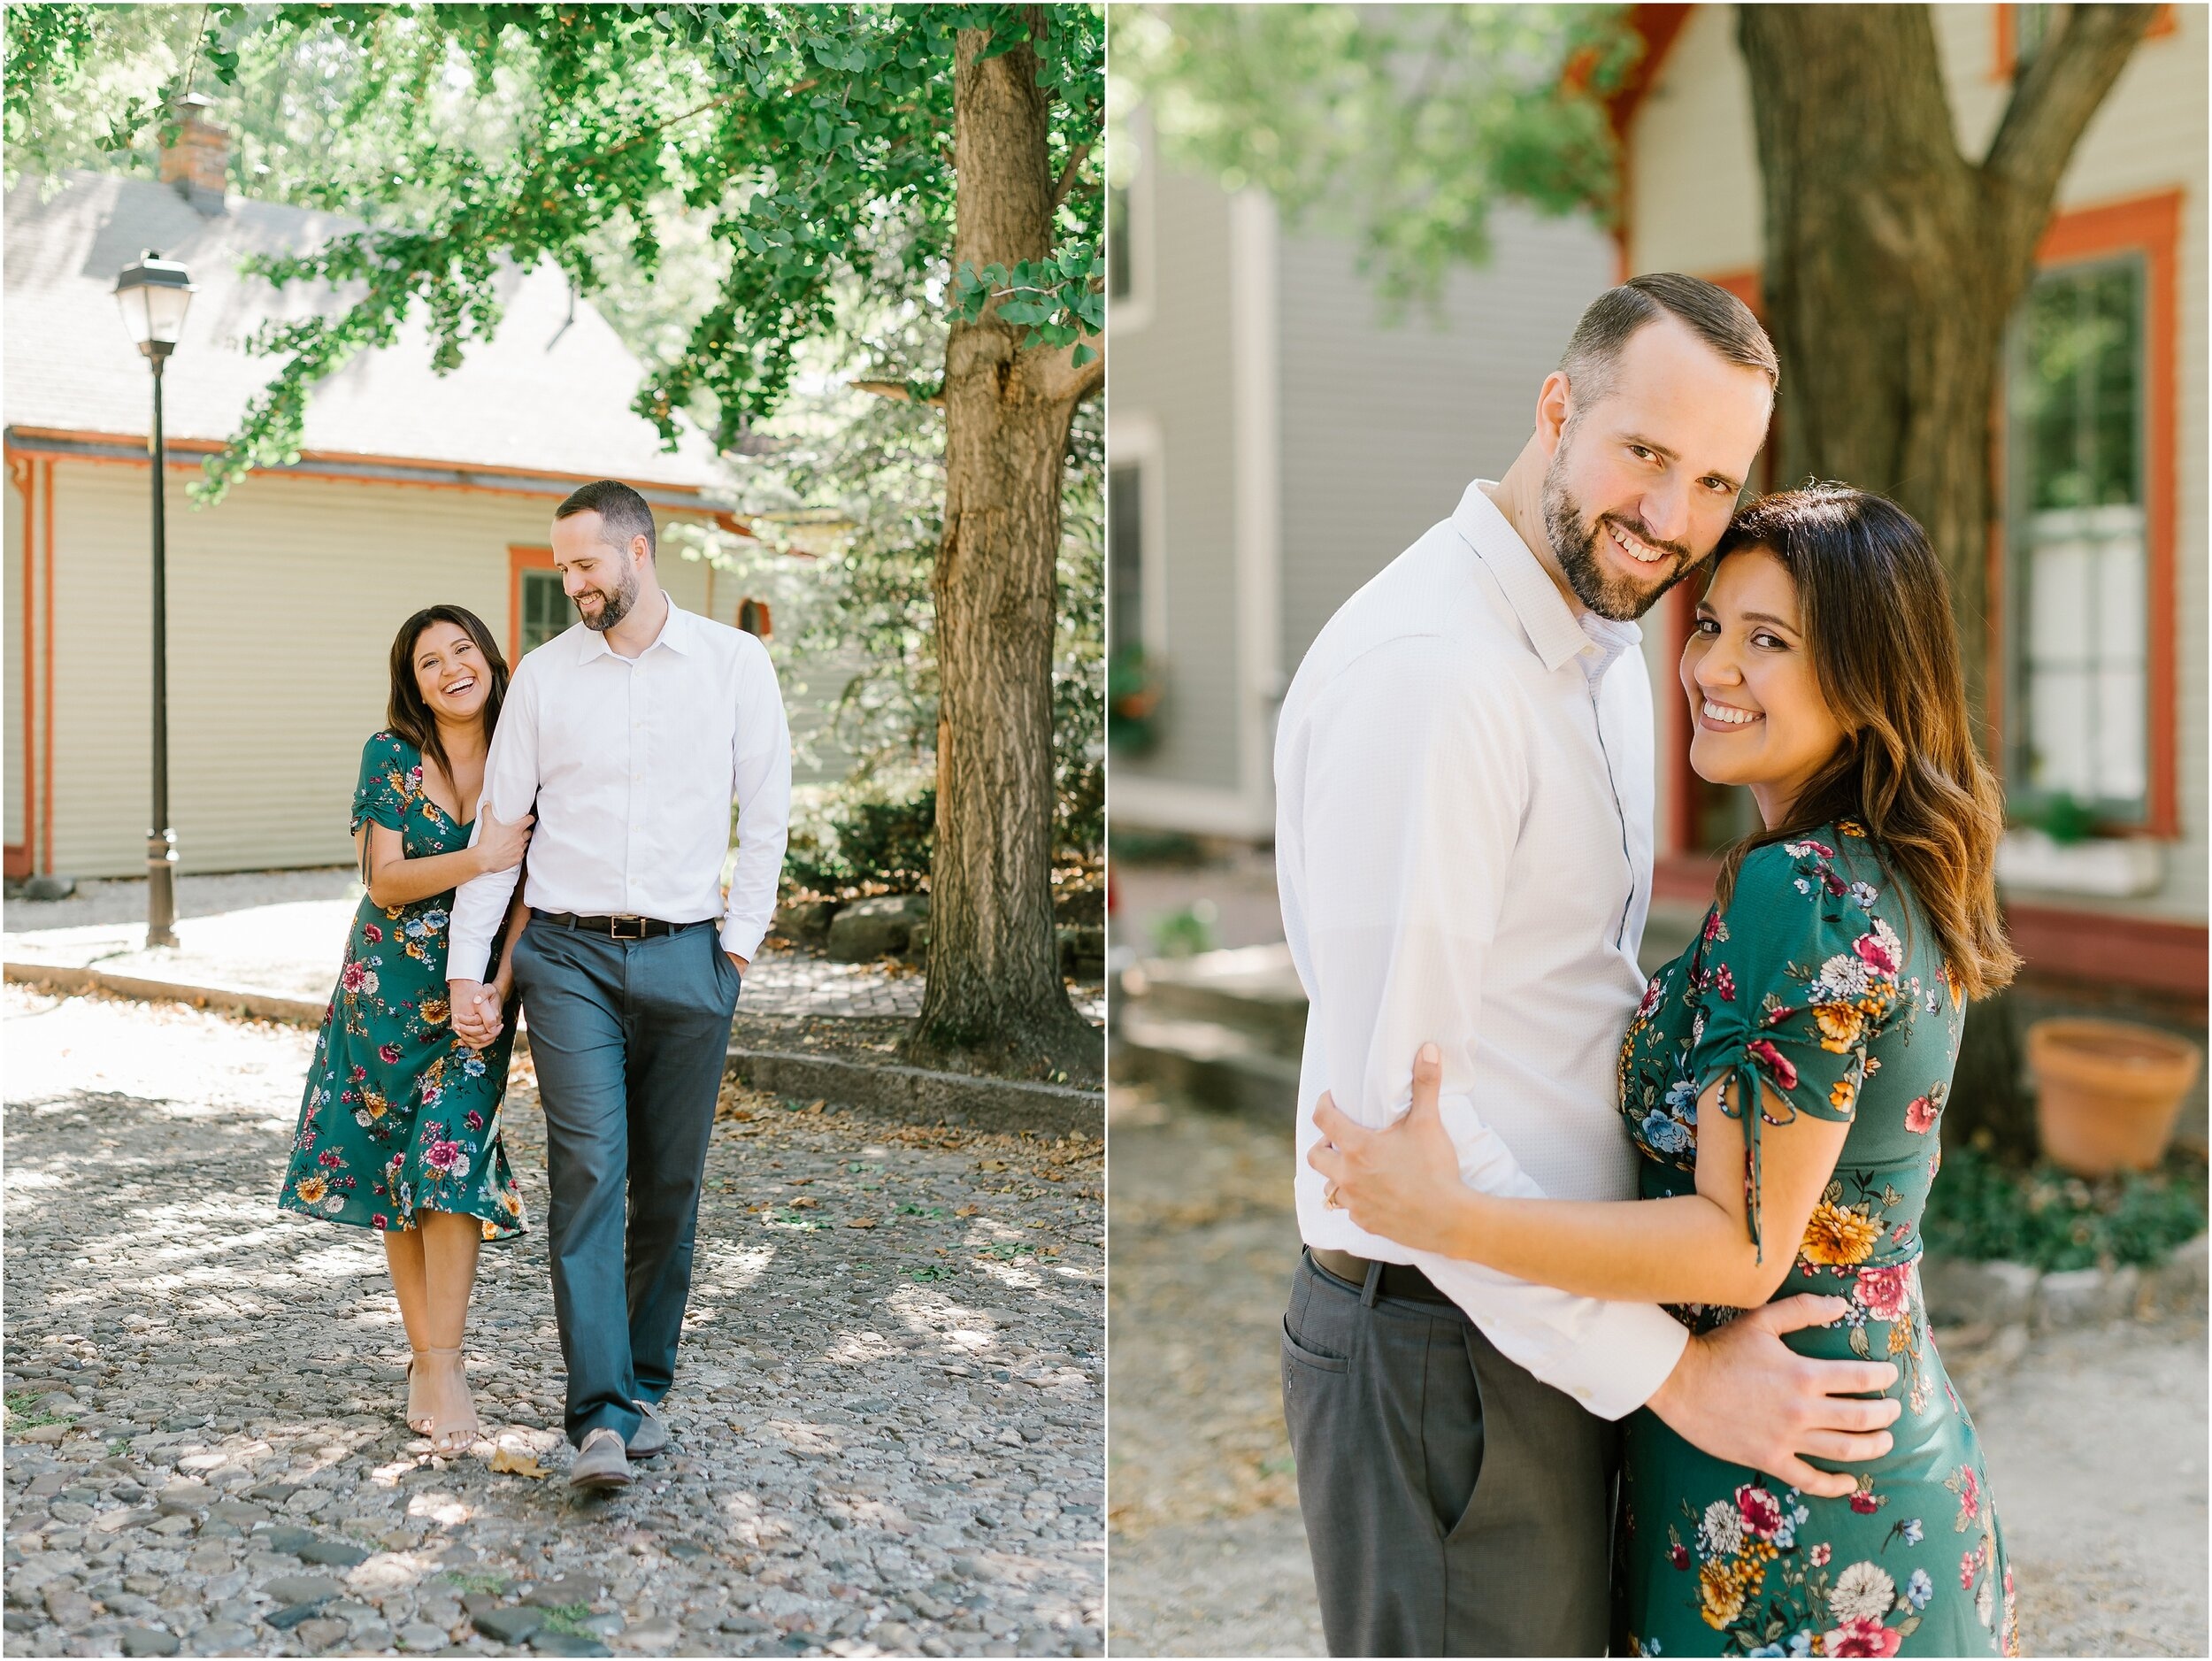 Rebecca Shehorn Photography Indianapolis Wedding Photographer Belen and Colin Engagement Session_0820.jpg